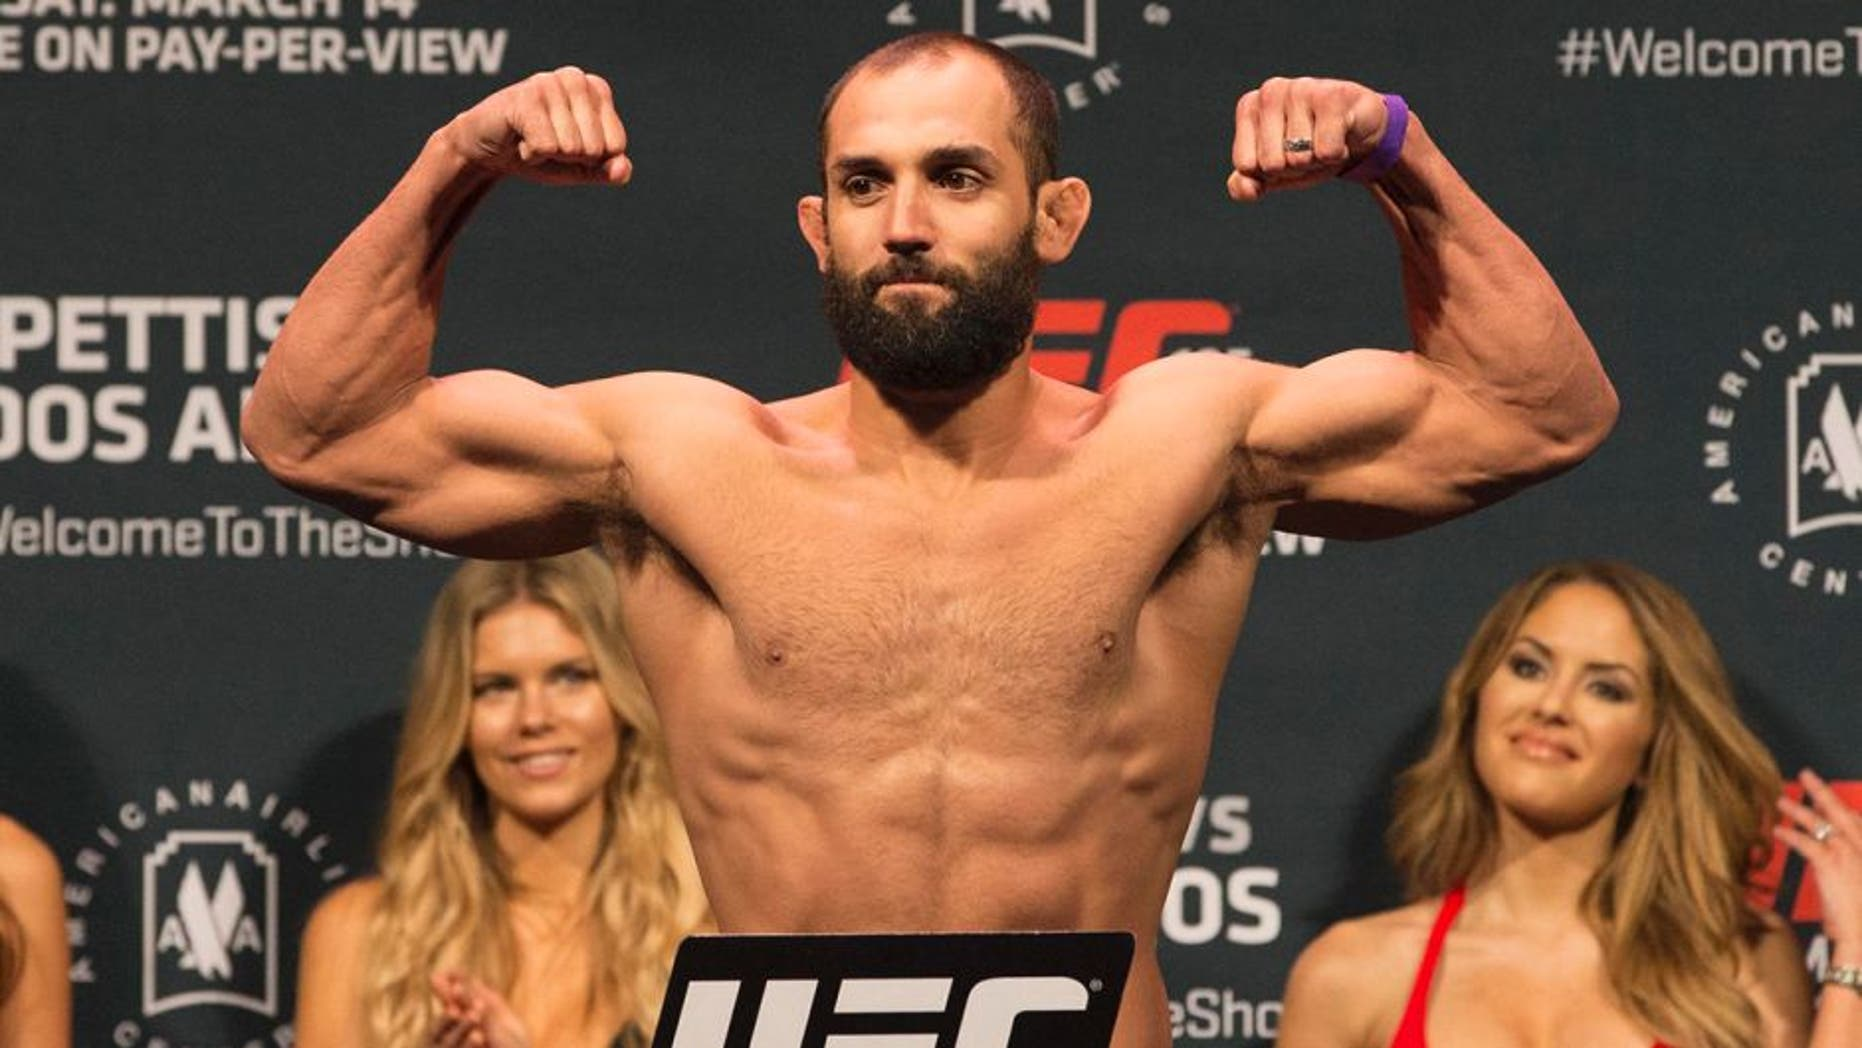 Mar 13, 2015; Dallas, TX, USA; Johny Hendricks stands on the scale during weigh-ins for UFC 185 at Kay Bailey Hutchison Convention Center. Mandatory Credit: Tim Heitman-USA TODAY Sports